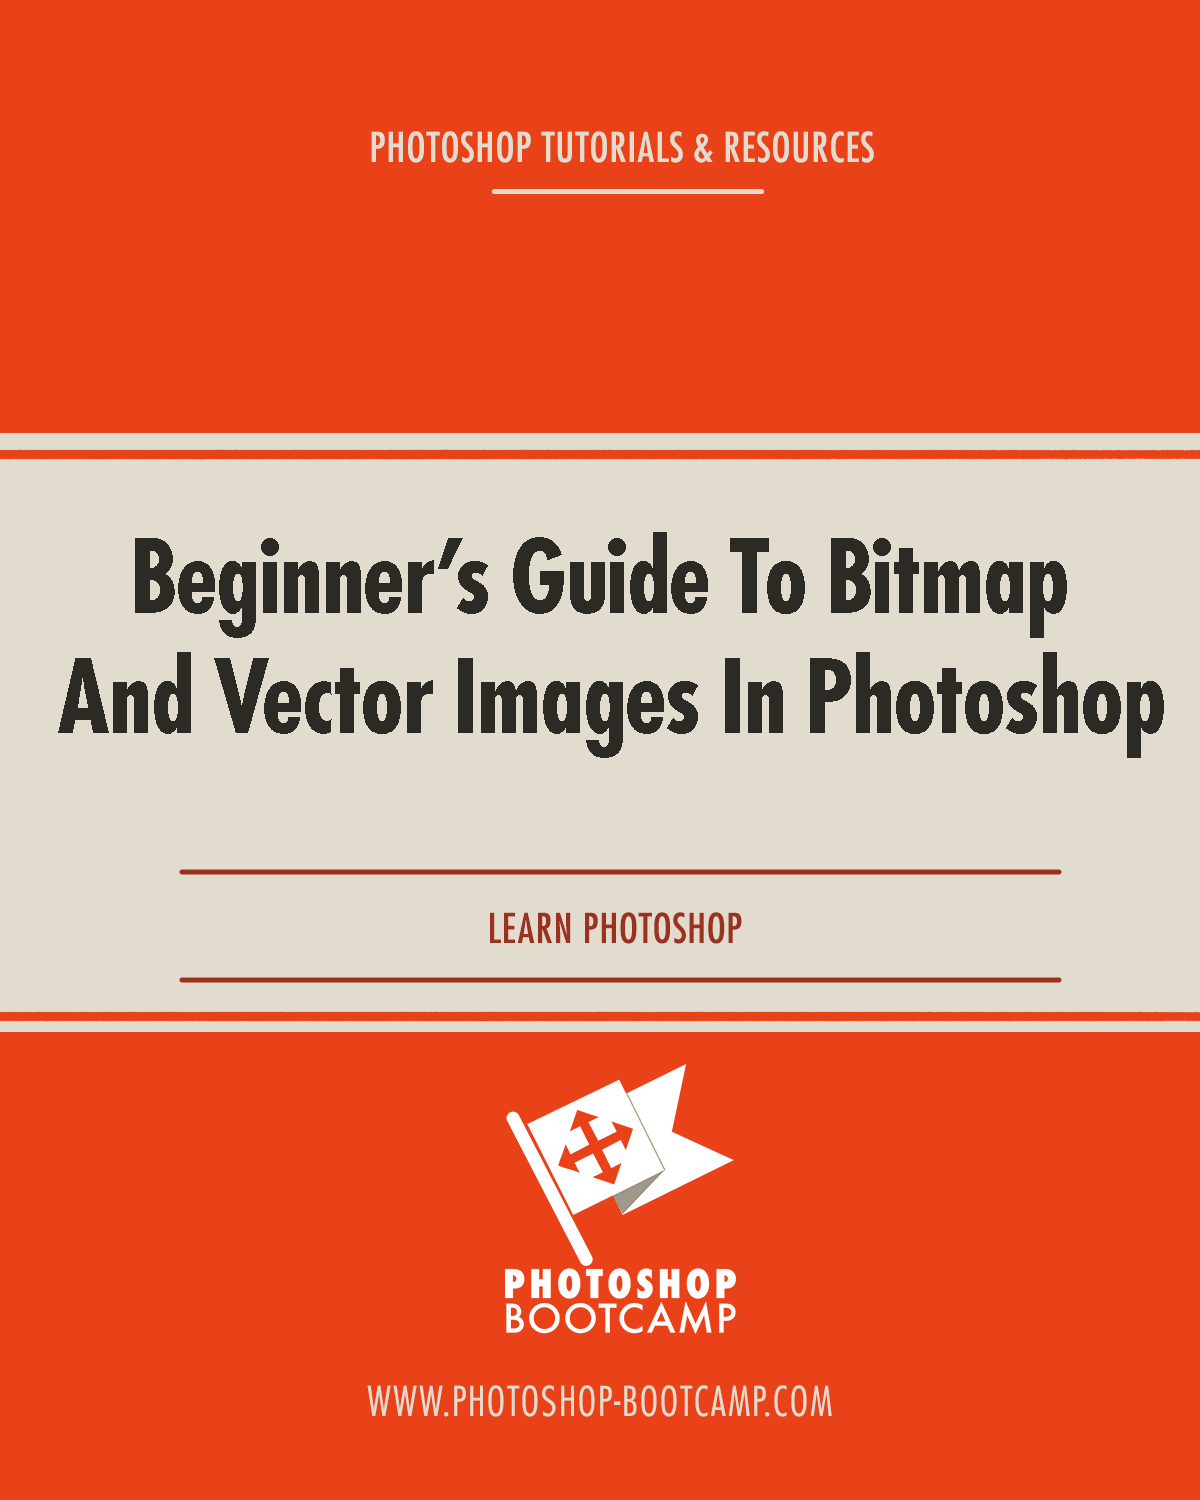 Beginner's Guide To Bitmap And Vector Images In Photoshop